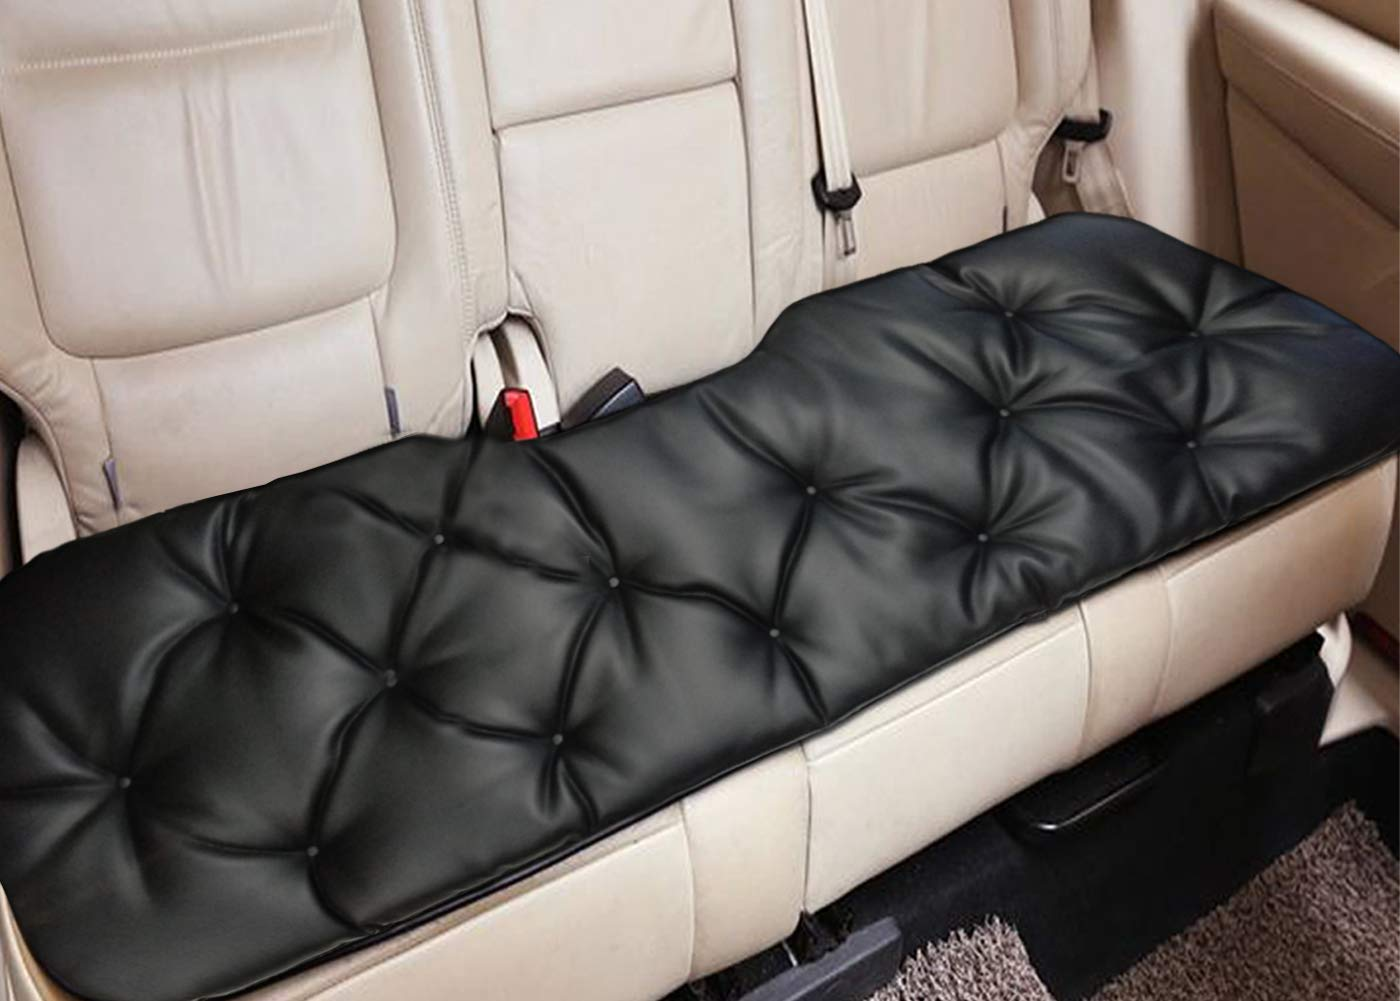 "Big Ant Rear Car Seat Cover Breathable Back seat Cover Cushion Pad Mat Fit for Most Cars,Vans,SUVs,Trucks,Supplies with PU Leather(Black- Back Row 58.3"" x 18.9"") Thanks for your time"